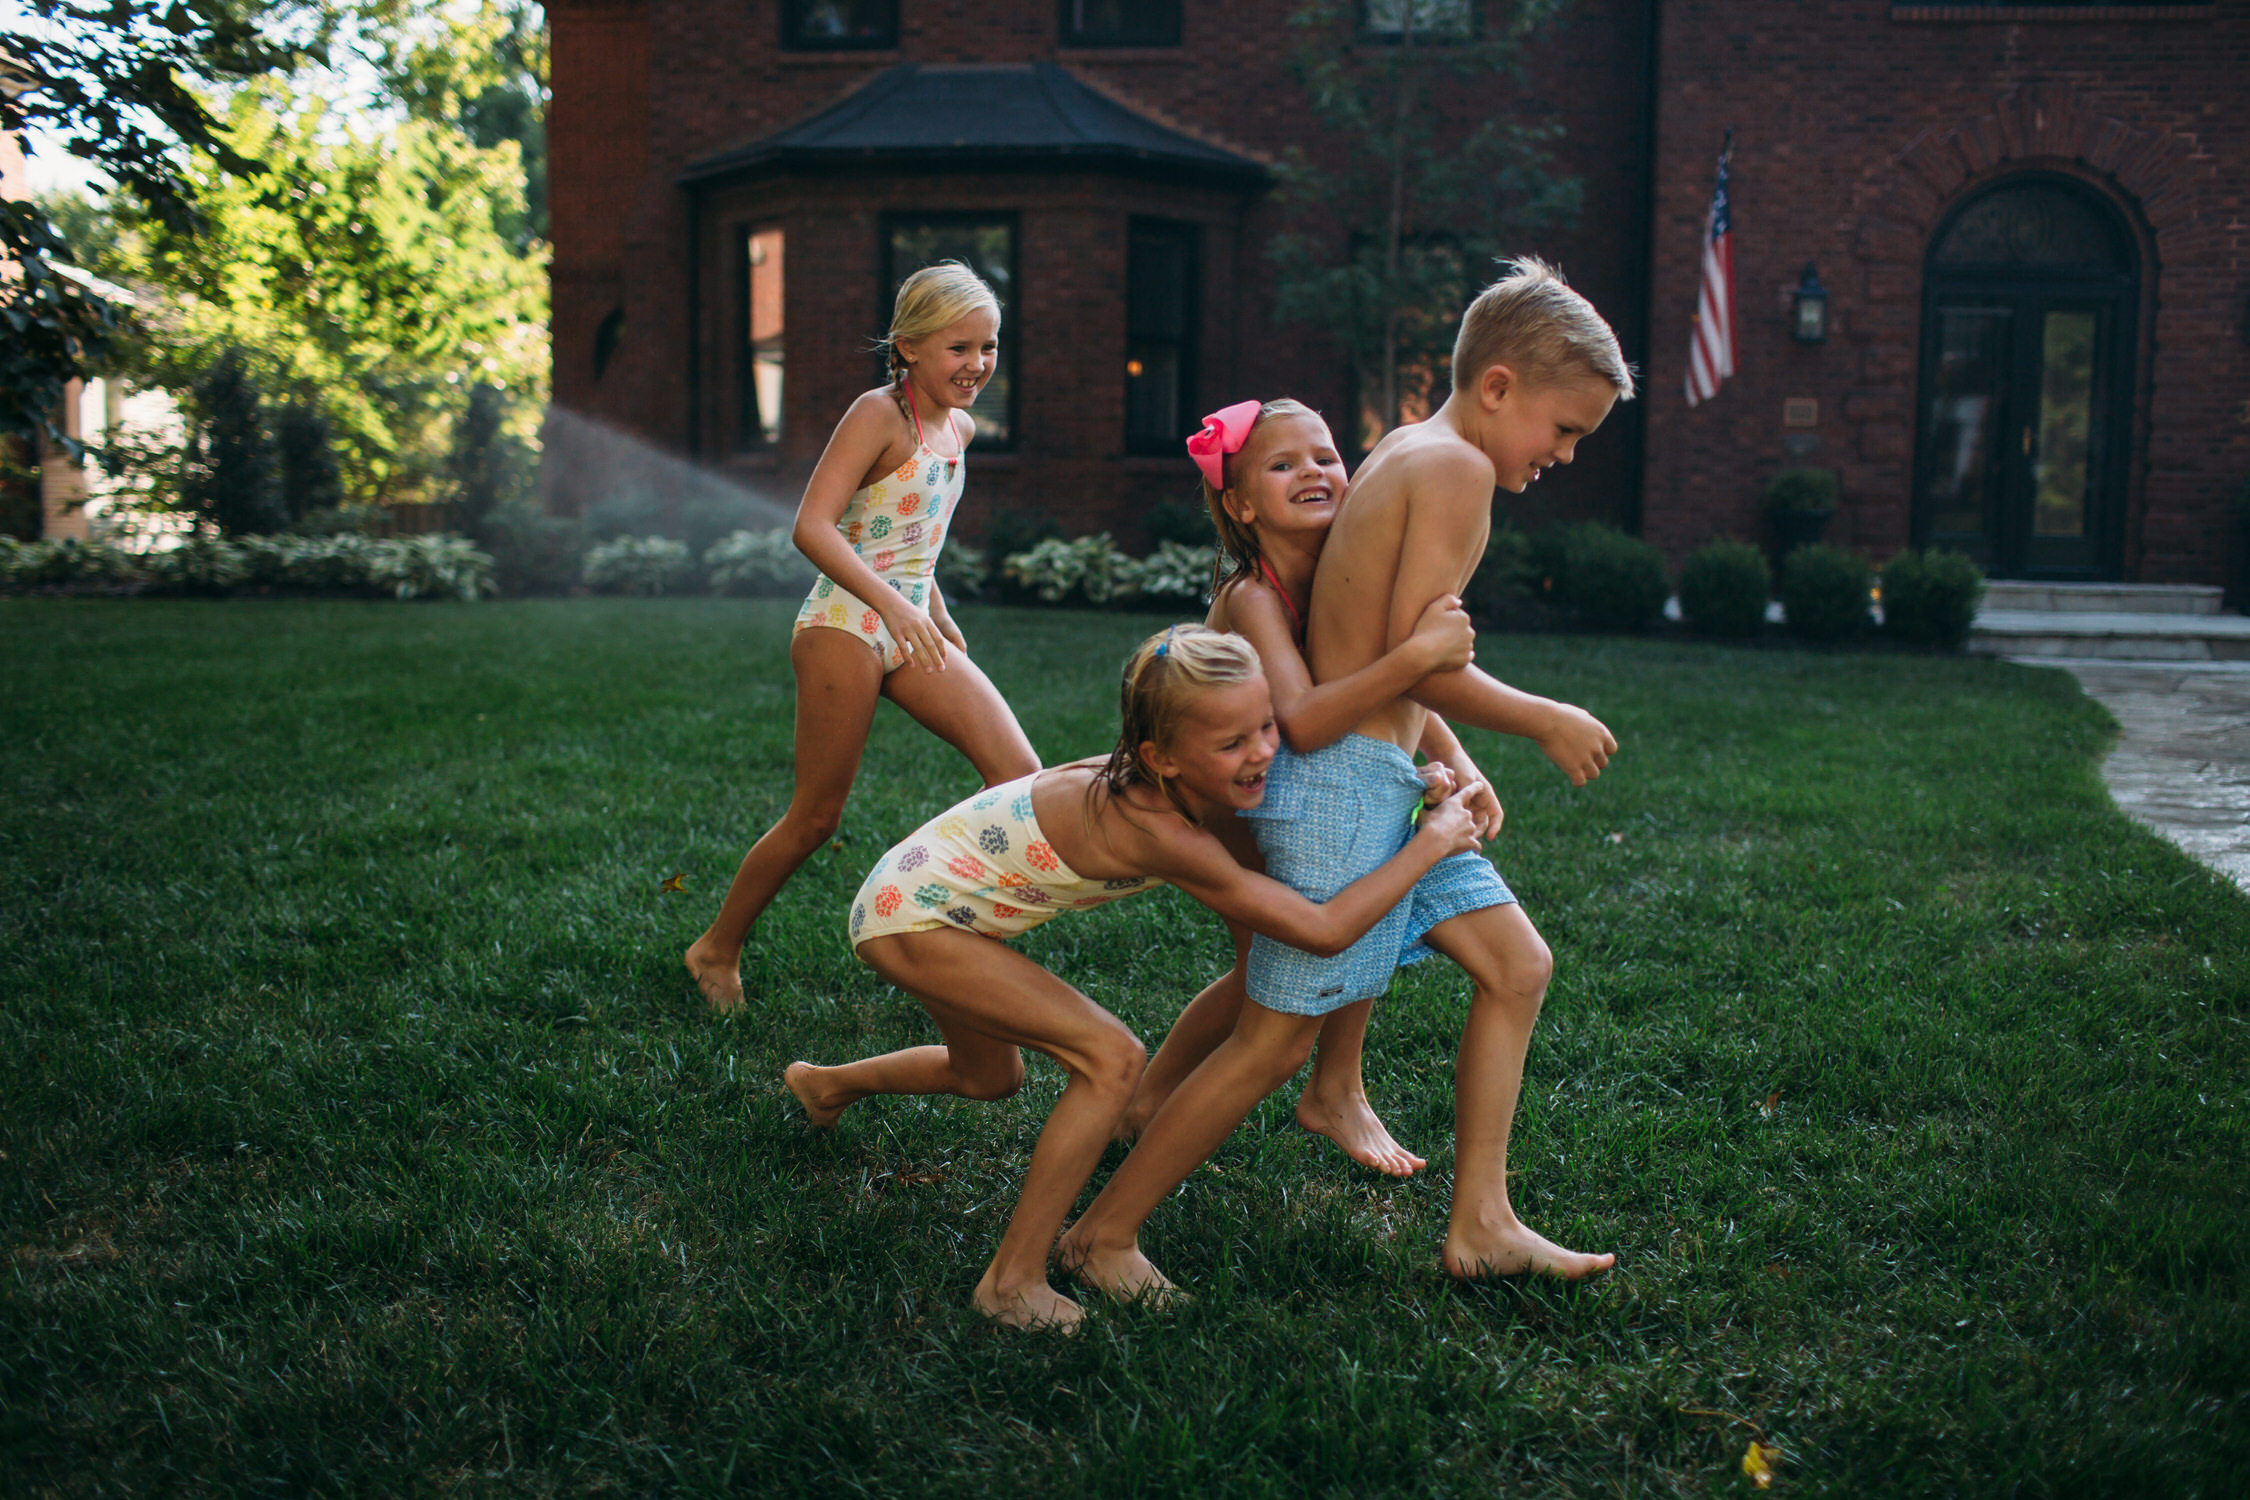 St Louis Family photographer, Summer family photos, Fun family photos, Lifestyle photographer